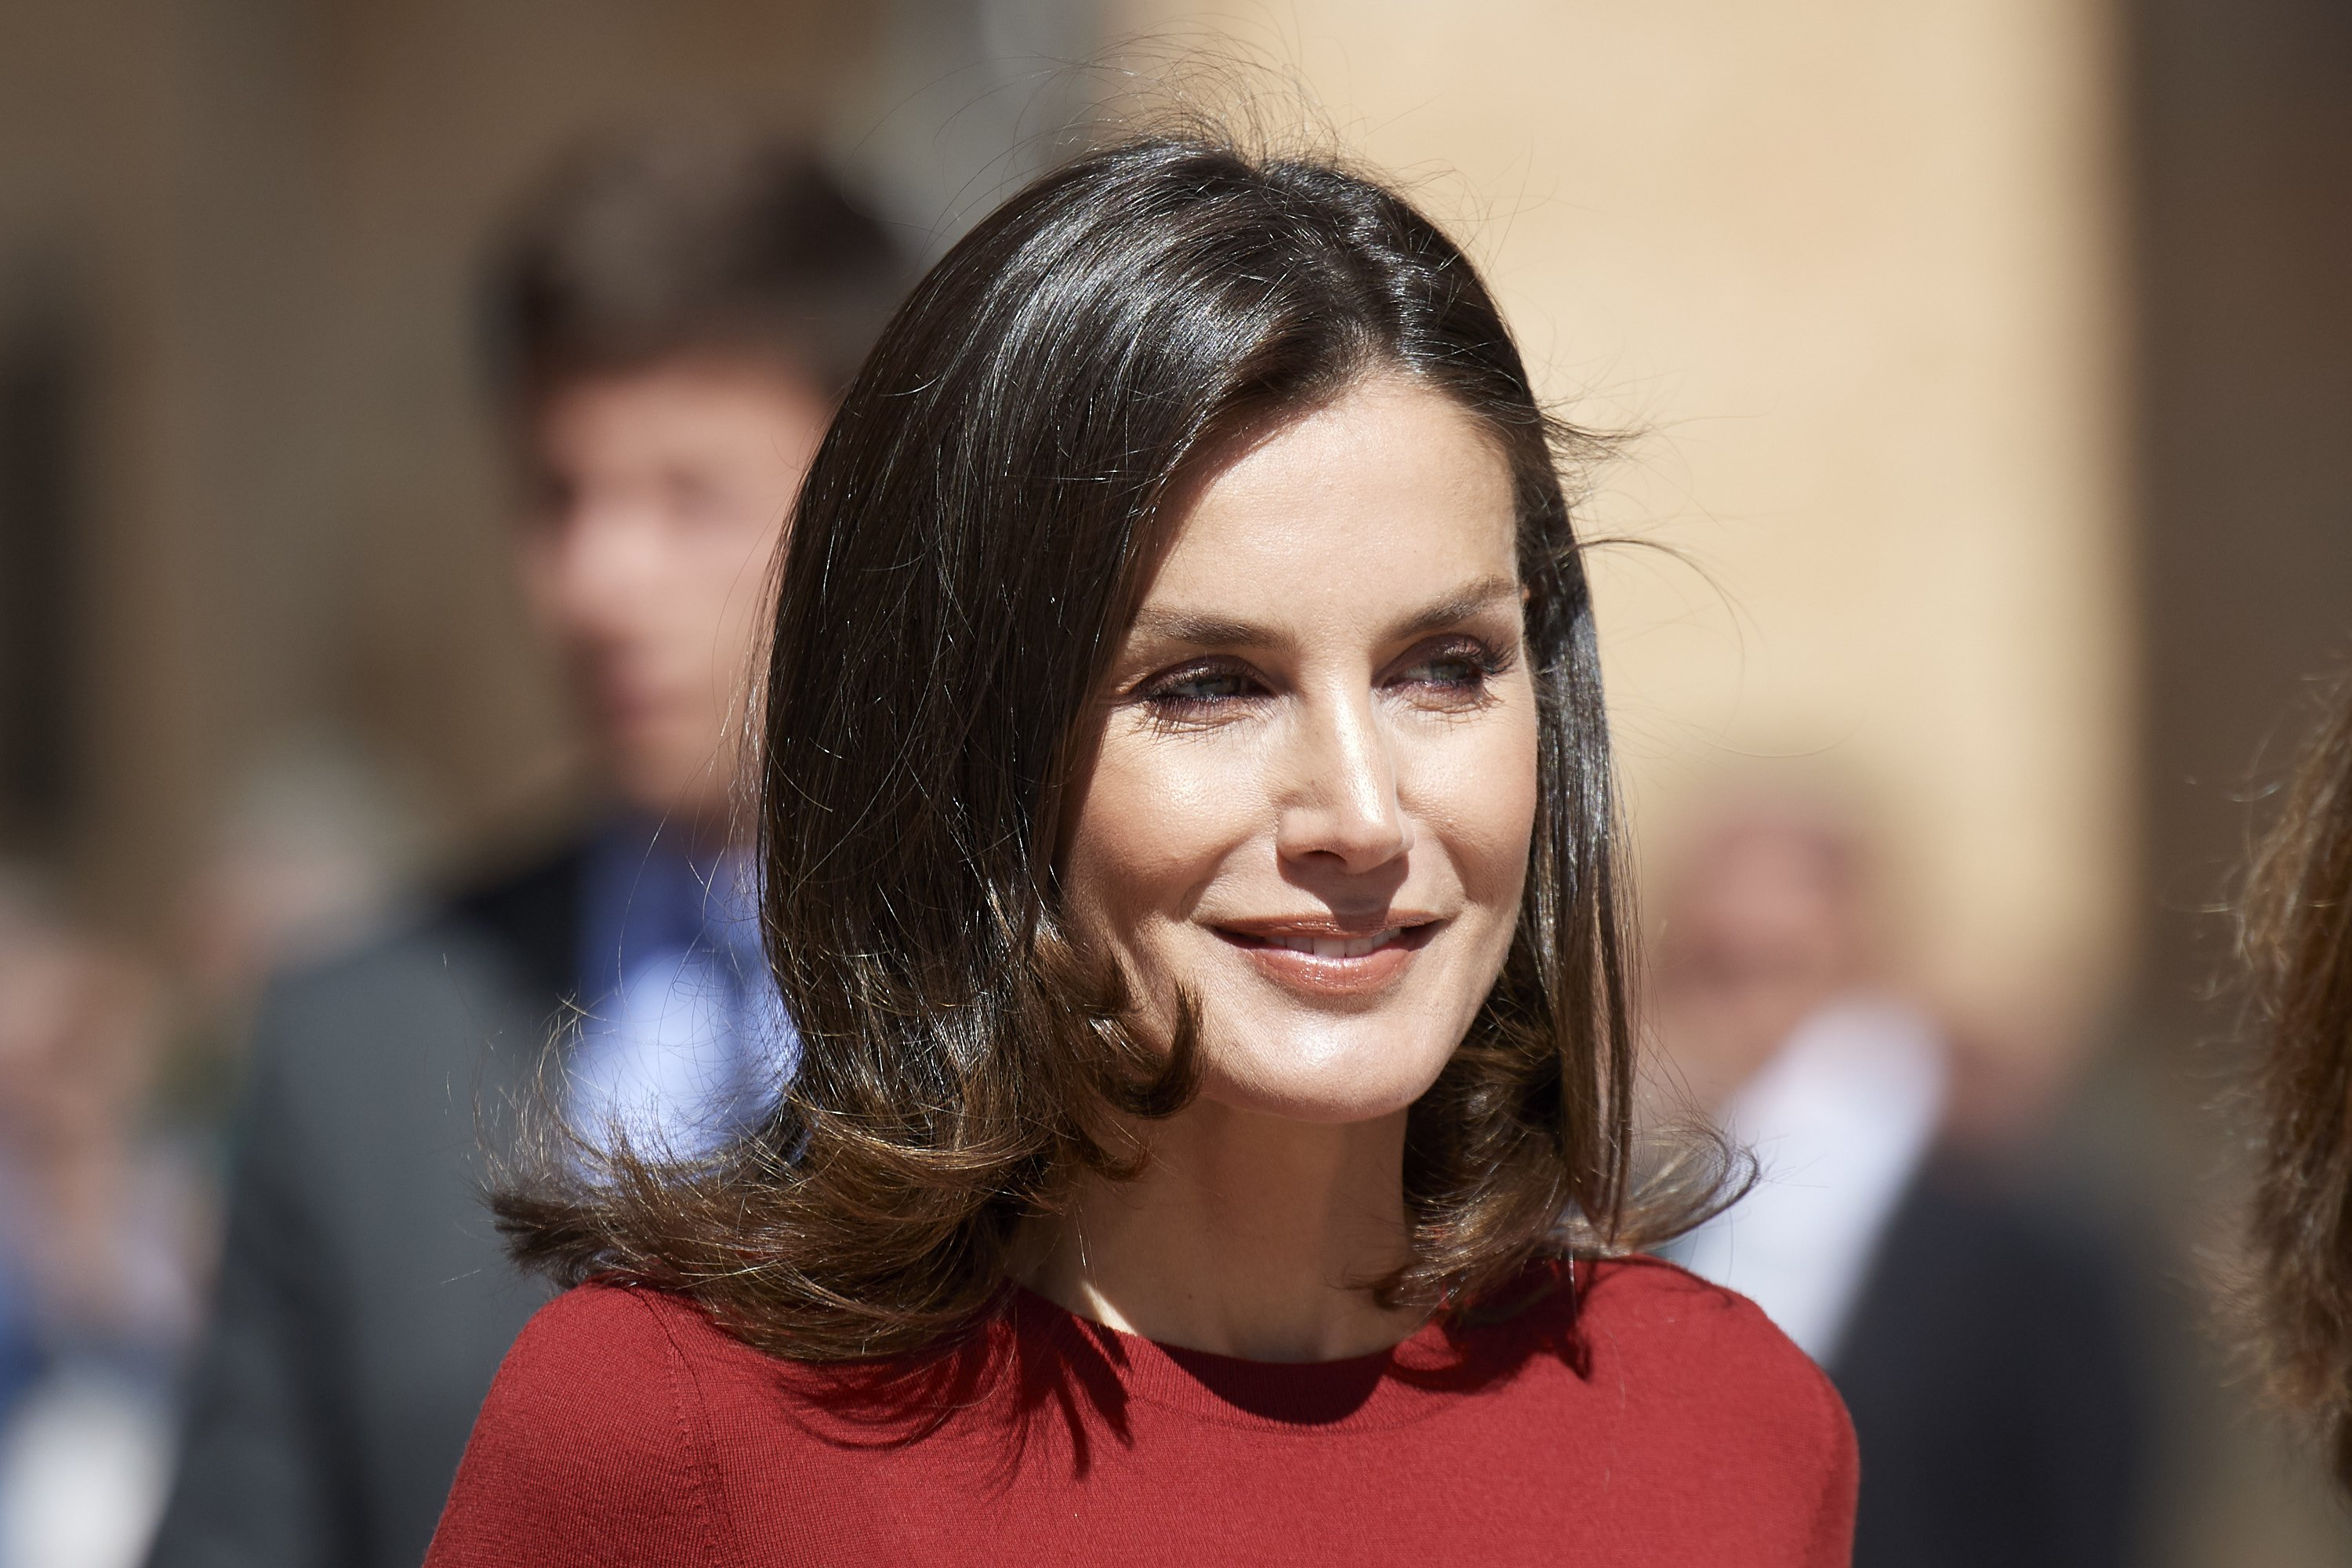 Queen Letizia Of Spain attends the closure Of Journalist's Seminar on June 12, 2019 | Photo: GettyImages